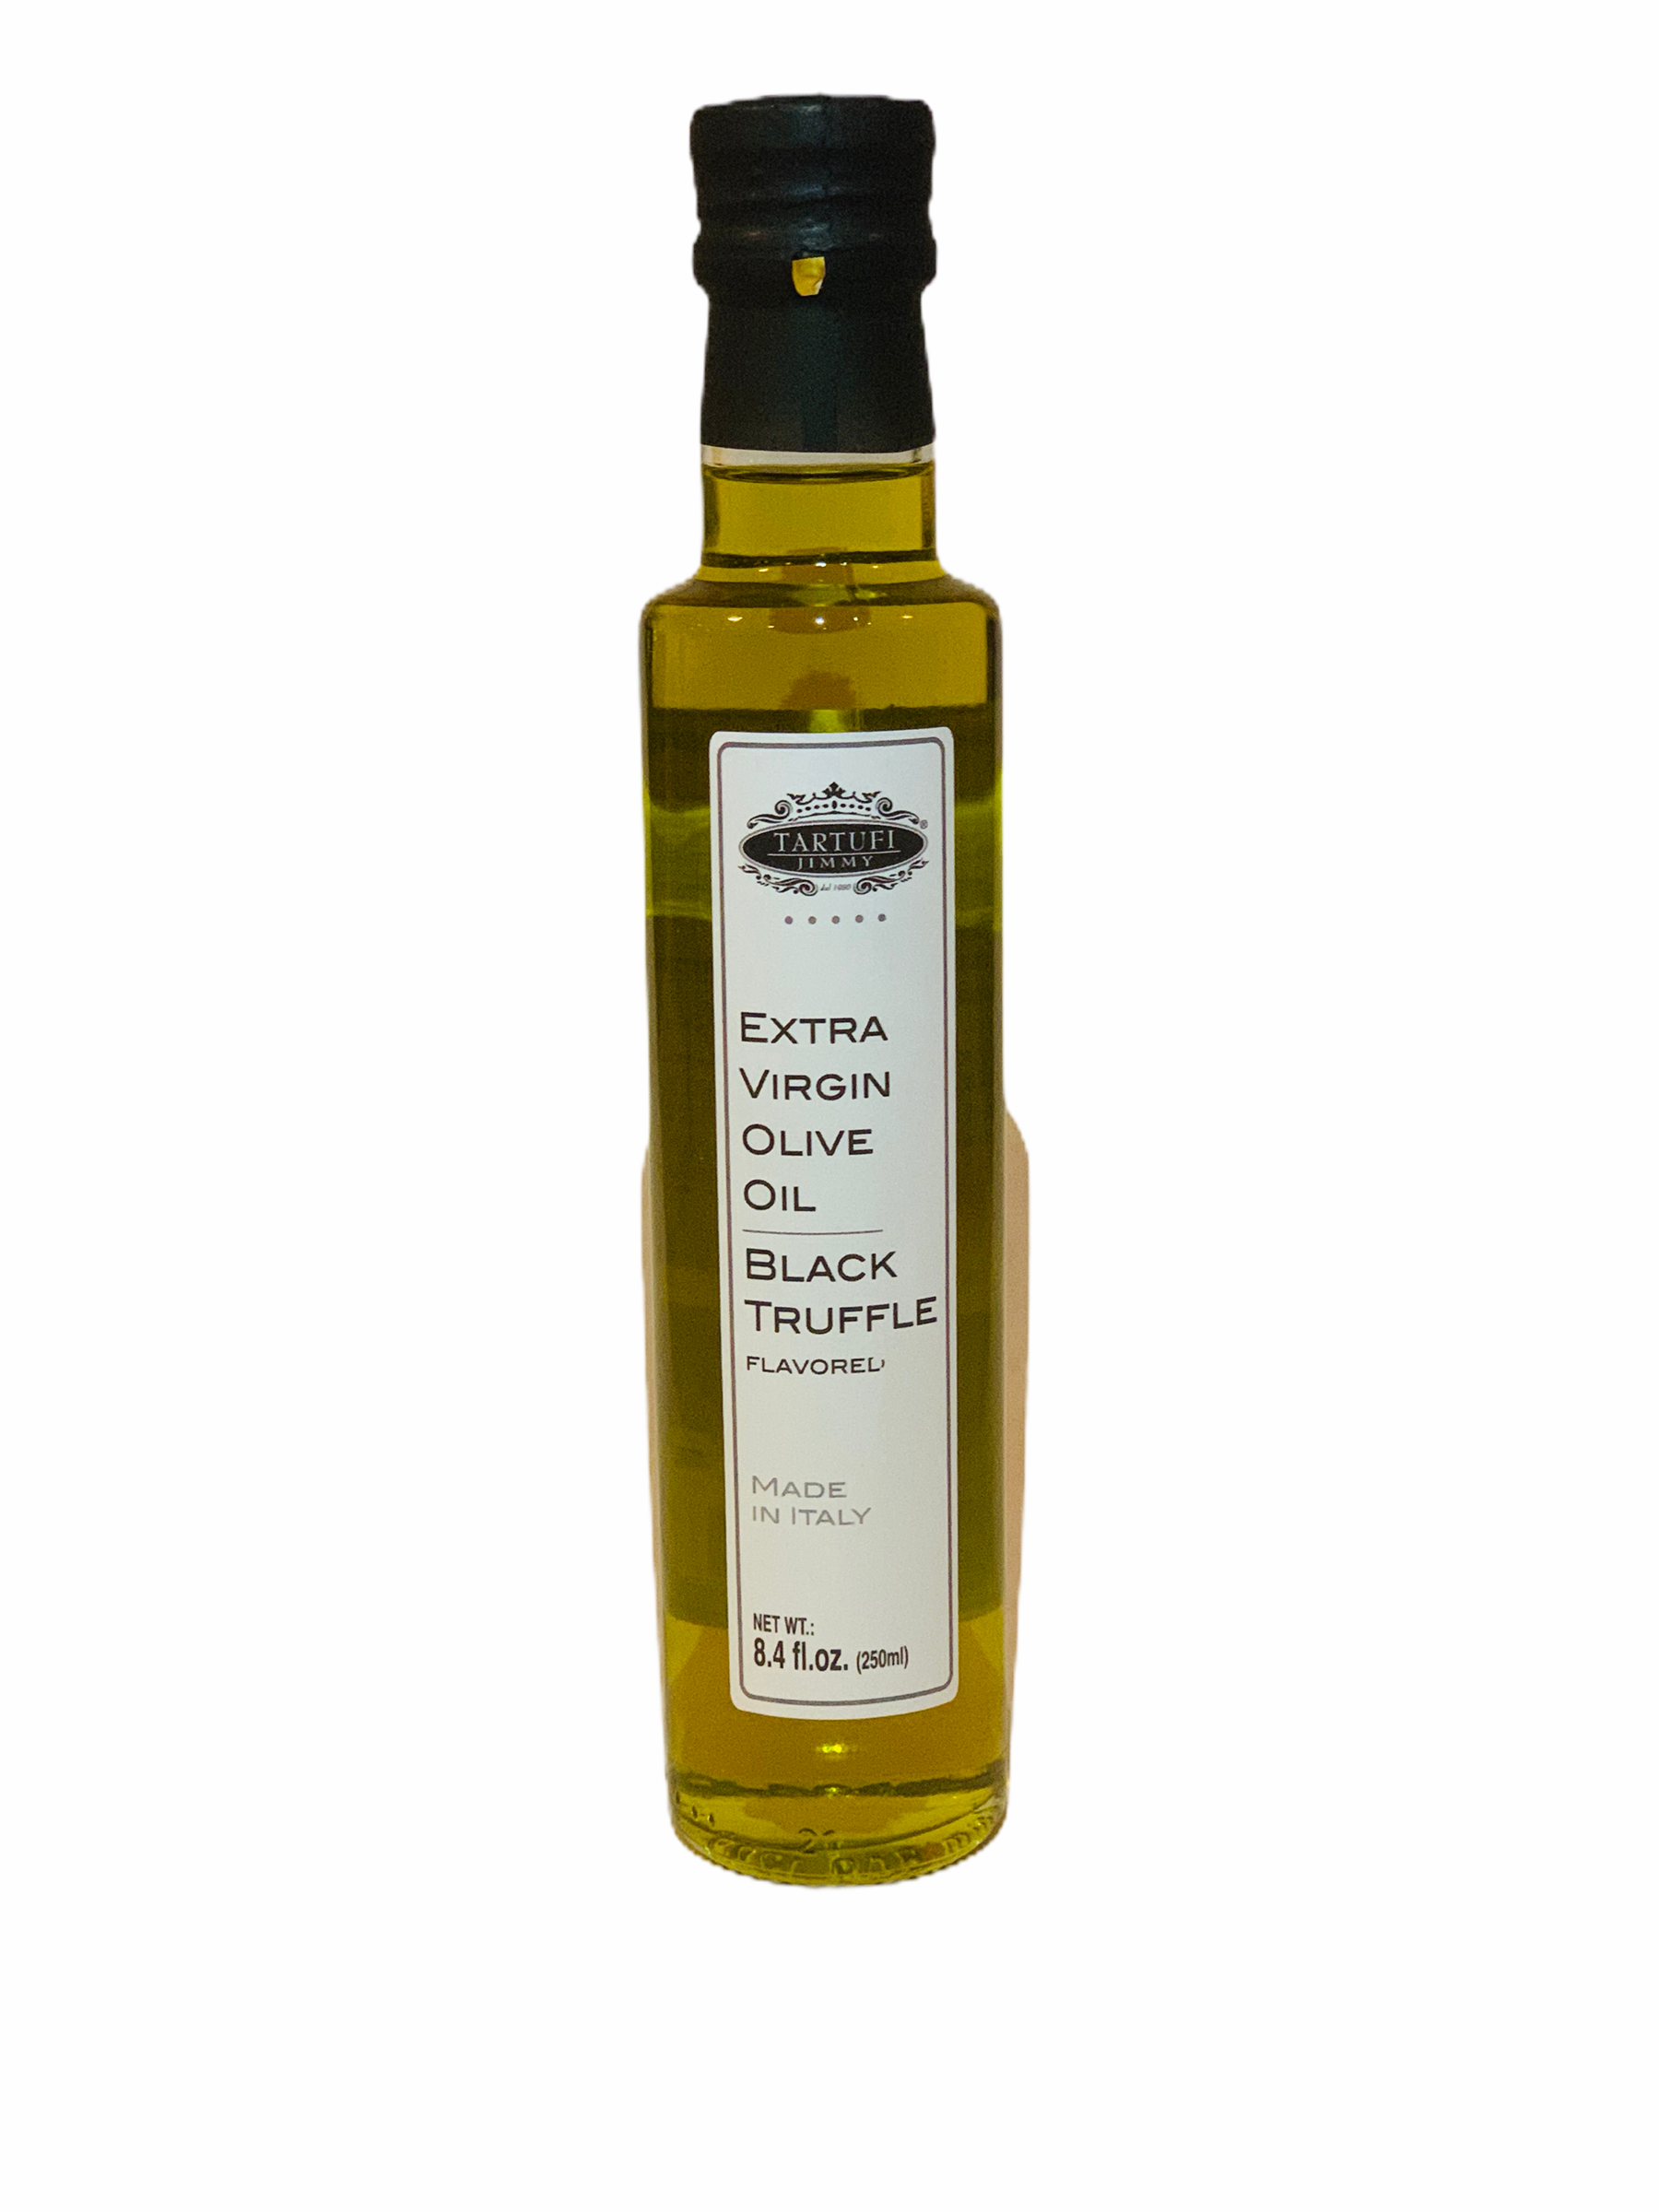 Extra Virgin Olive Oil Black Truffle Flavored, Jimmy Tartufi